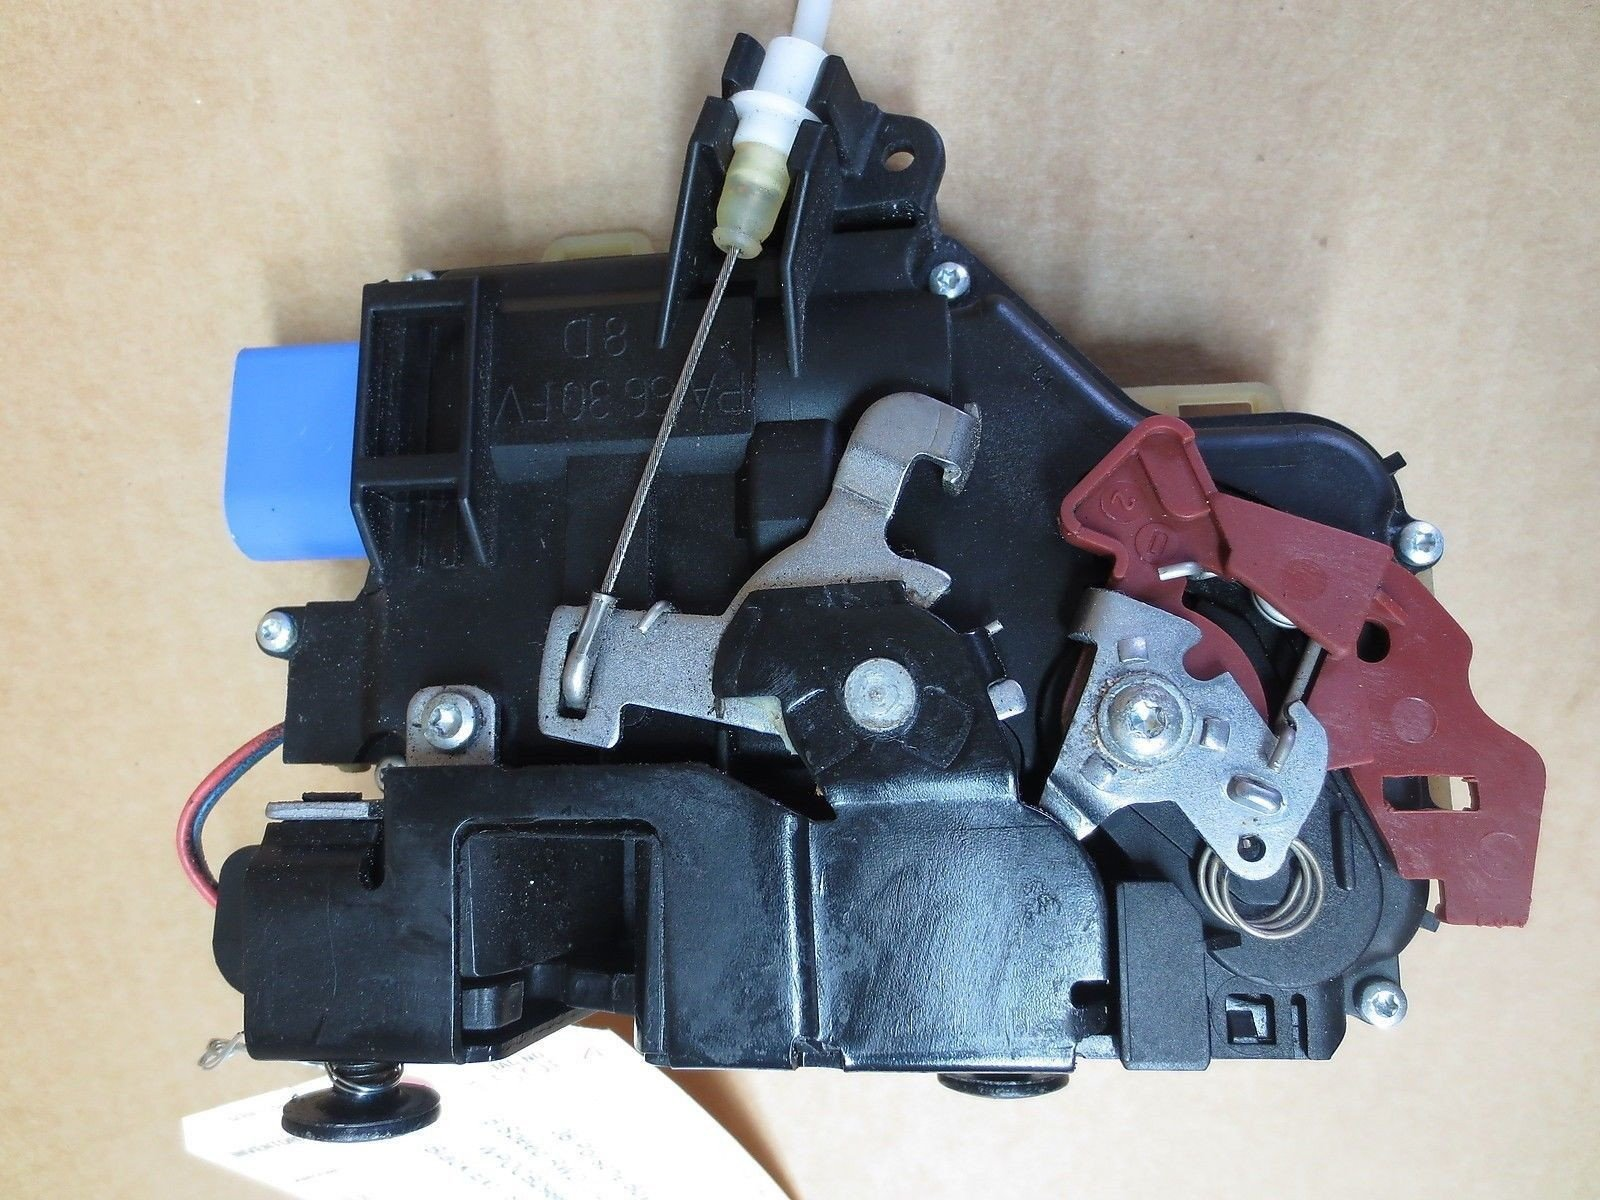 08 Boxster S RWD Porsche 987 Convertible R Door Latch Lock ACTUATOR right 39,614